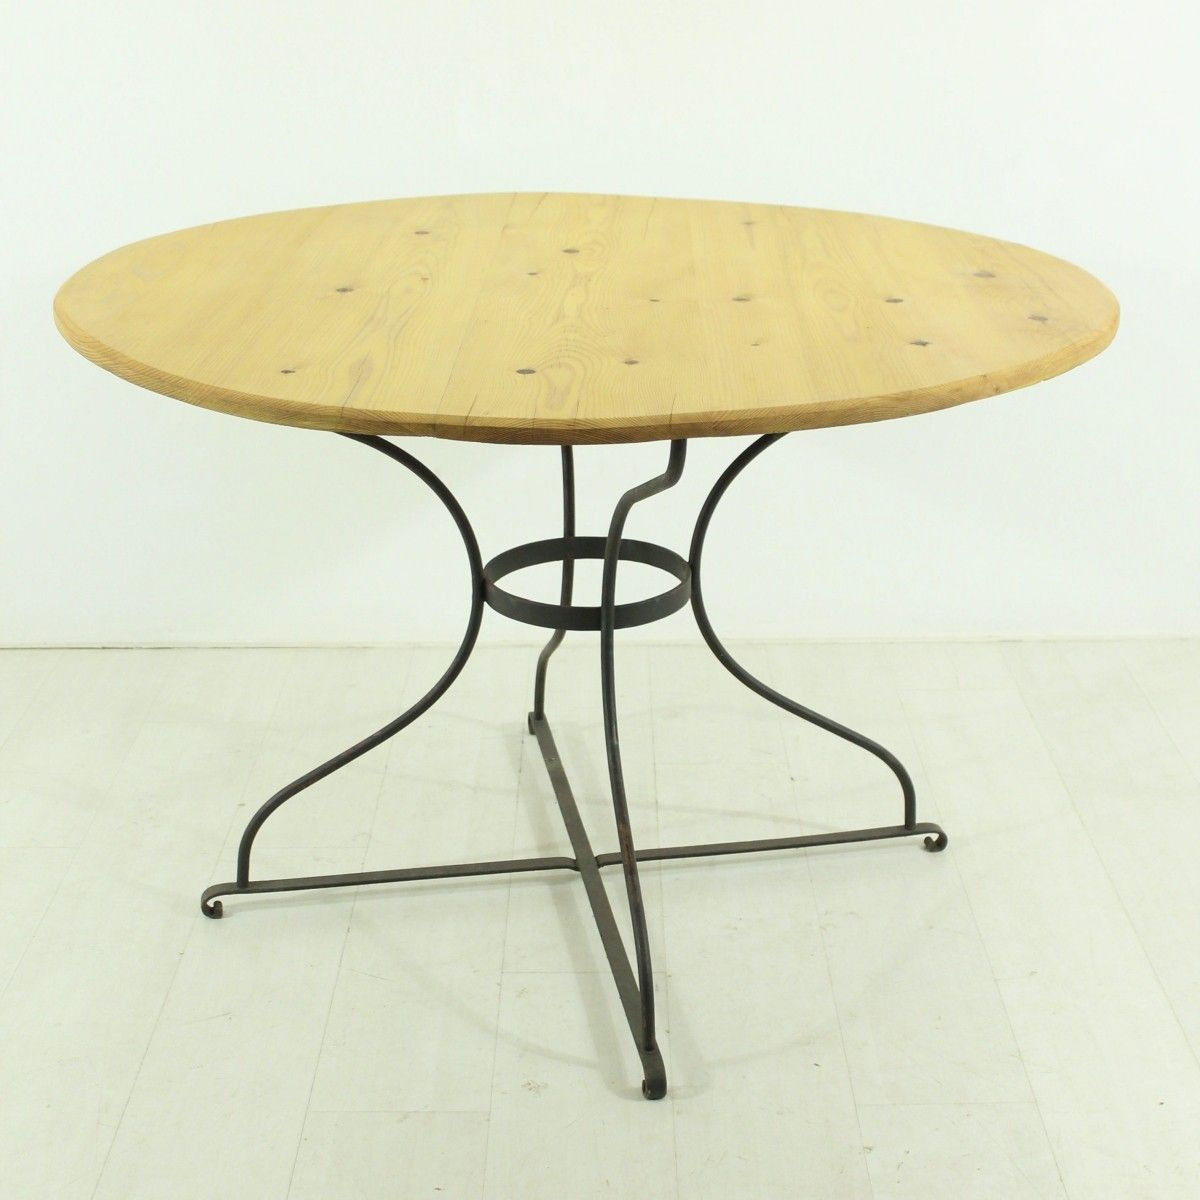 Vintage Round Dining Table with a Metal Base for sale at  : vintage round dining table with a metal base 2 from www.pamono.com size 1200 x 1200 jpeg 140kB